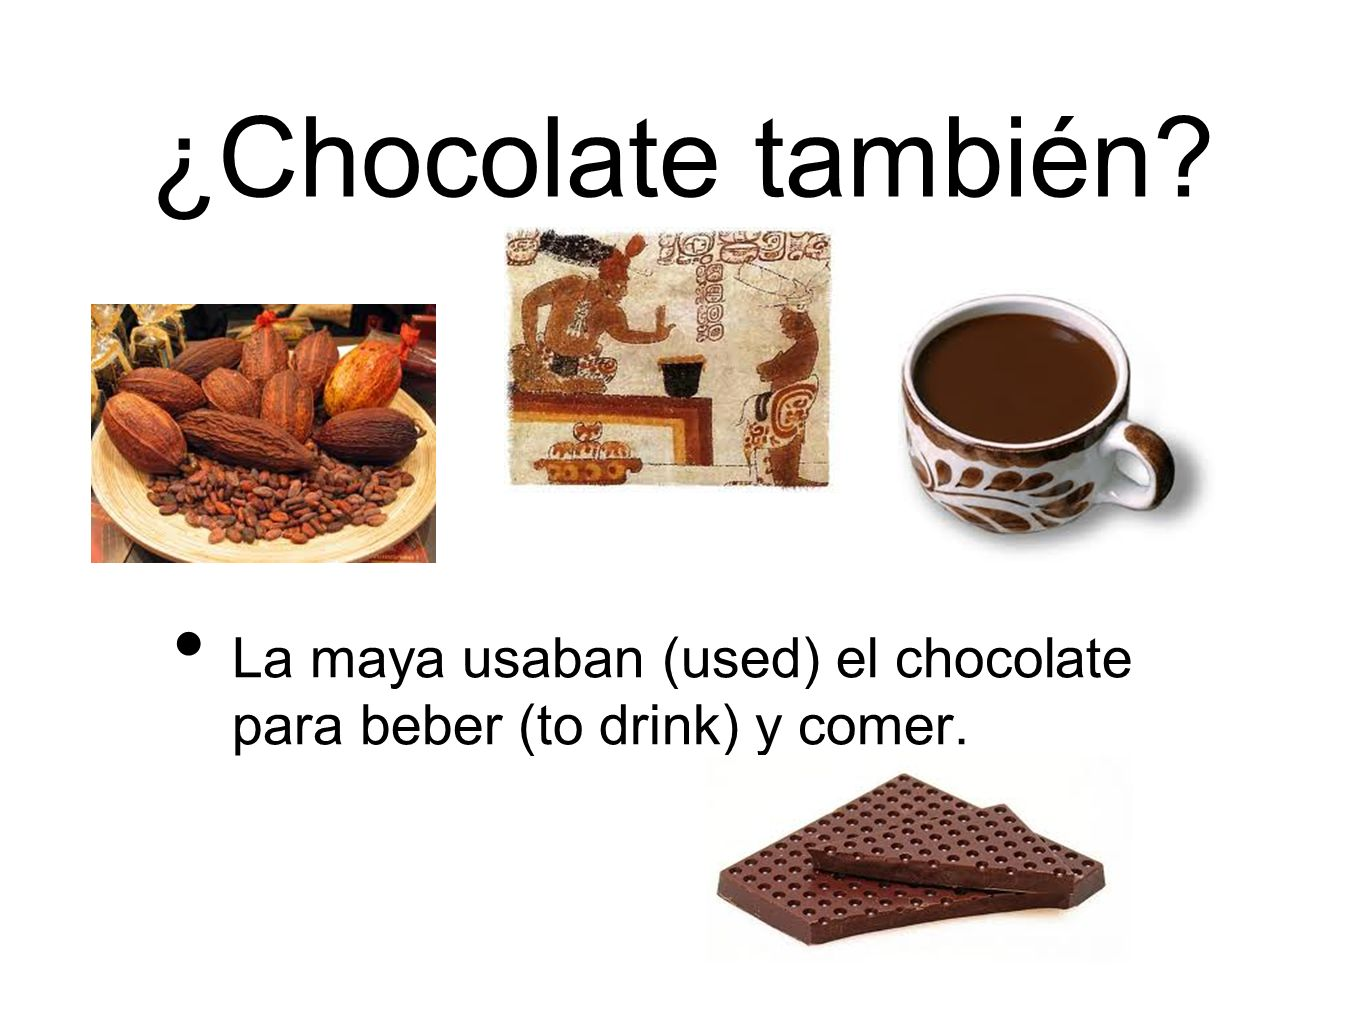 ¿Chocolate también La maya usaban (used) el chocolate para beber (to drink) y comer.